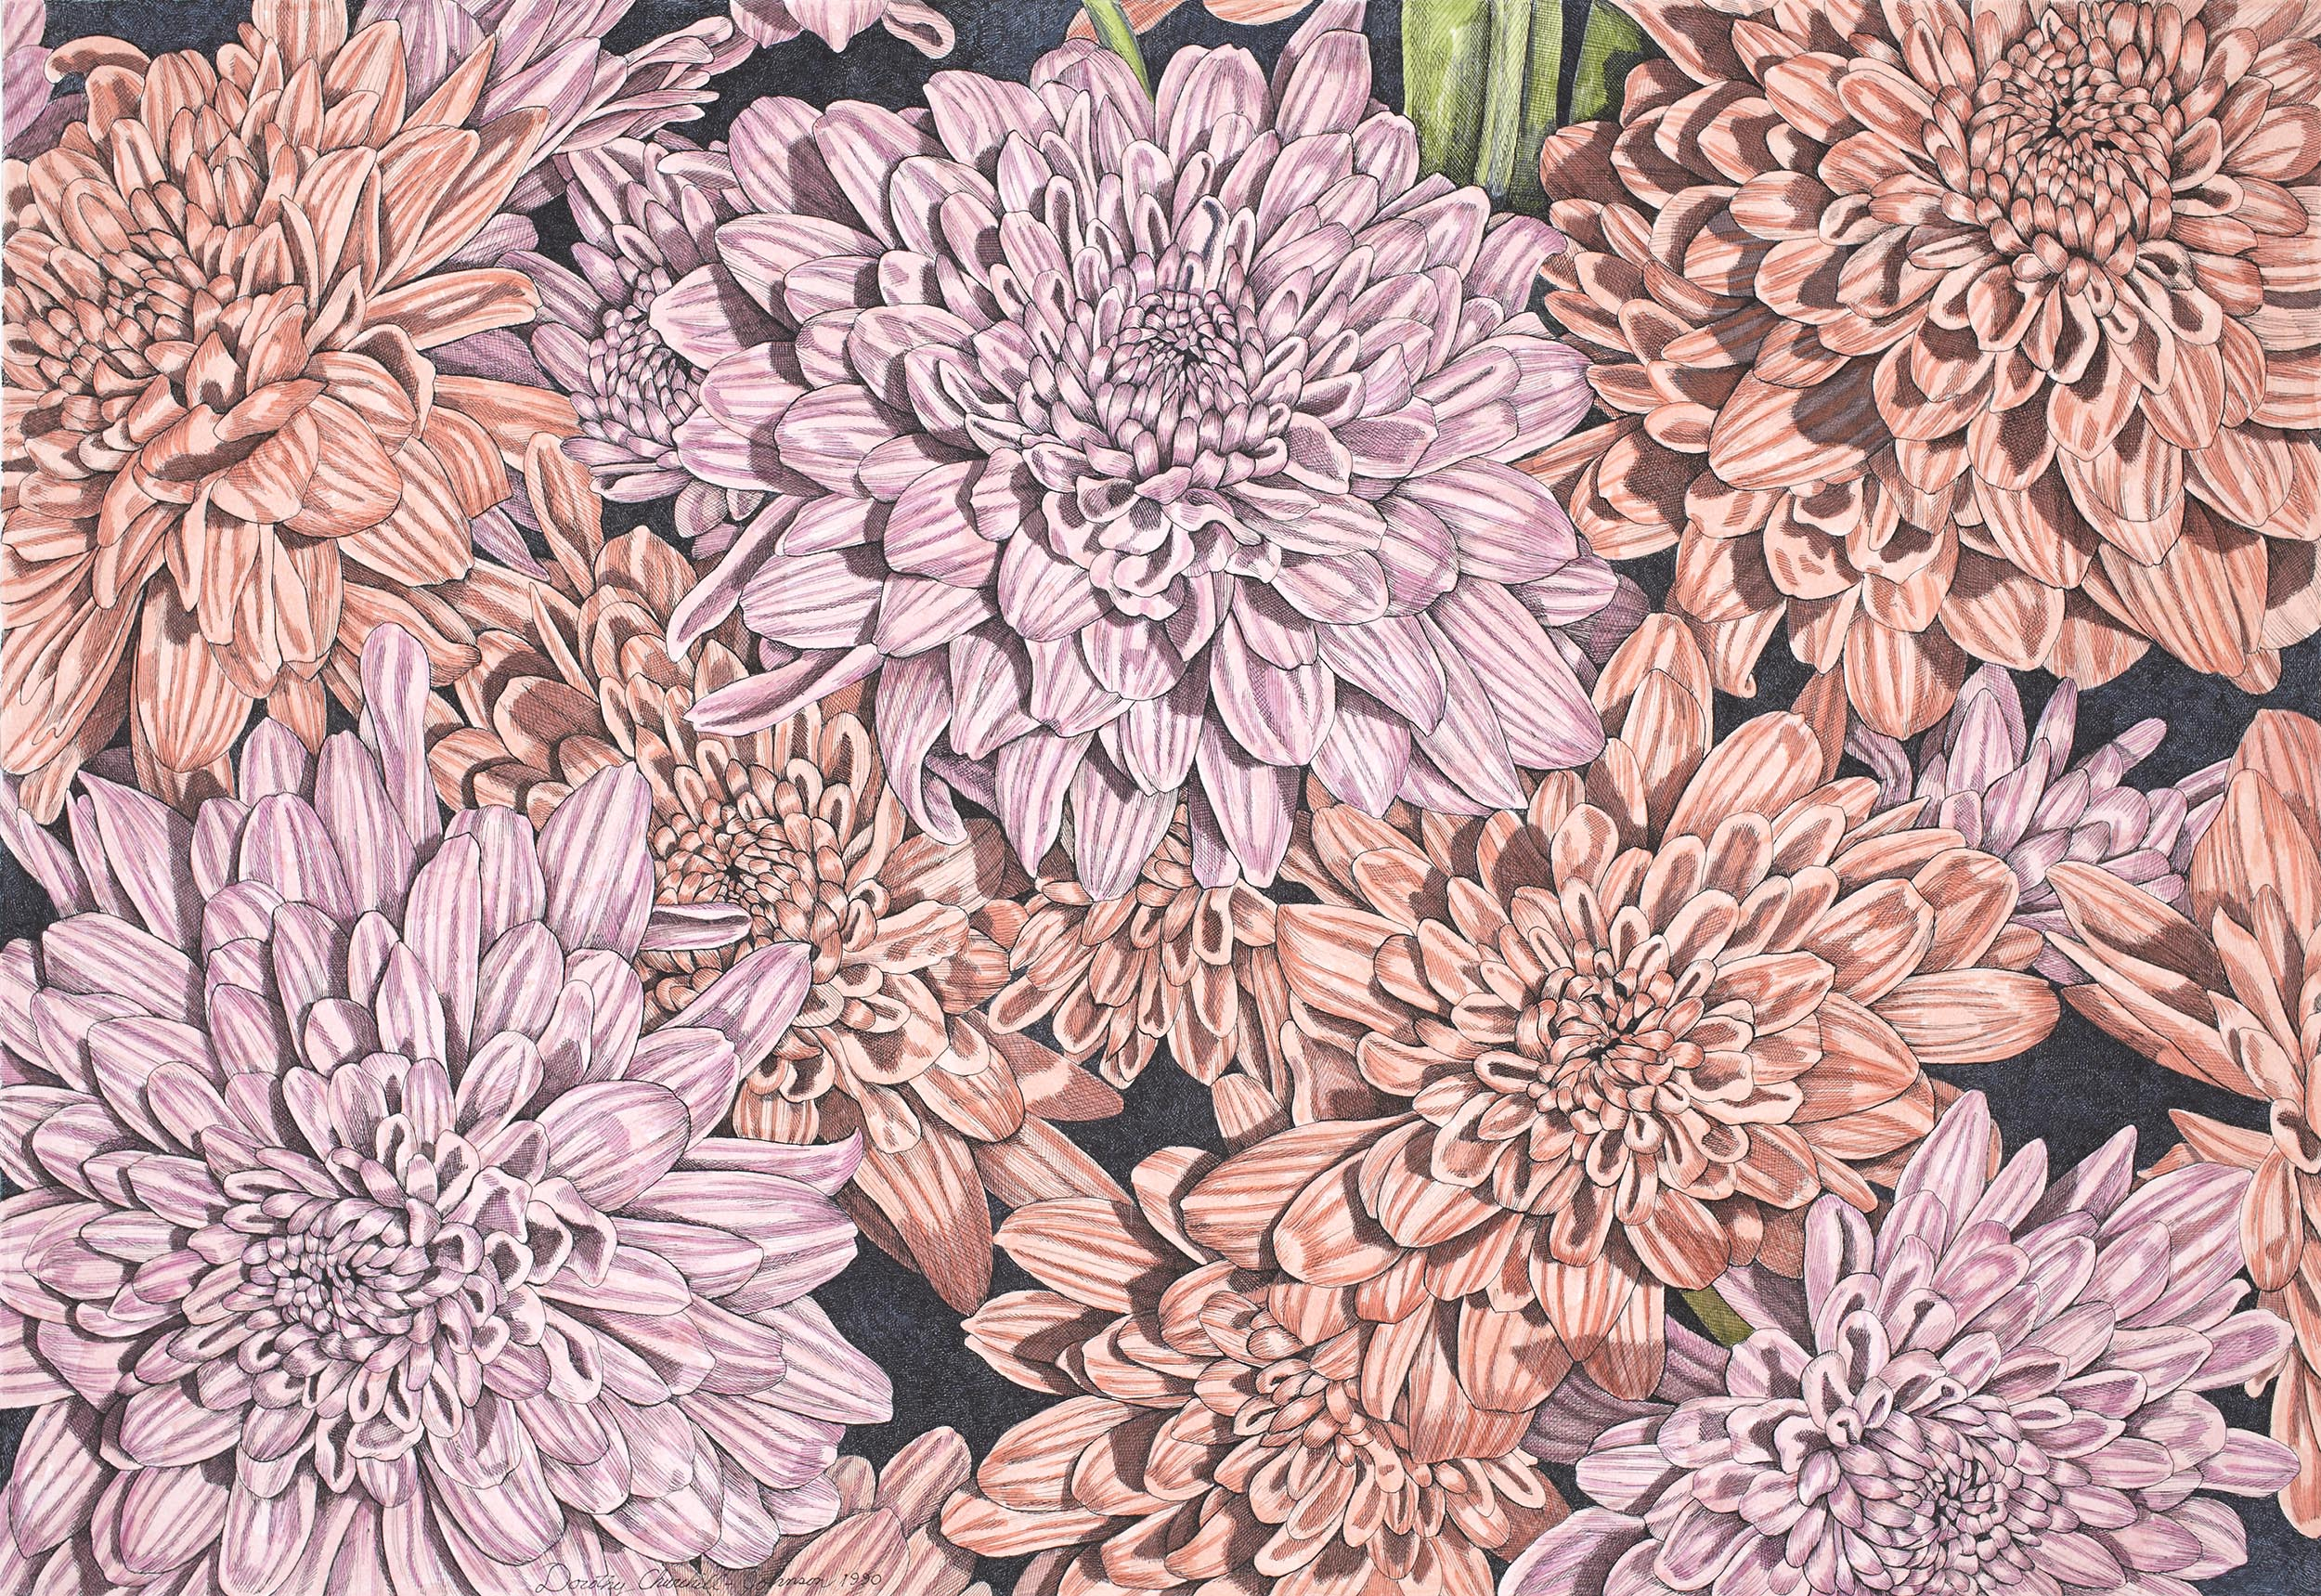 Chrysanthemums III, 19 x 28 inches